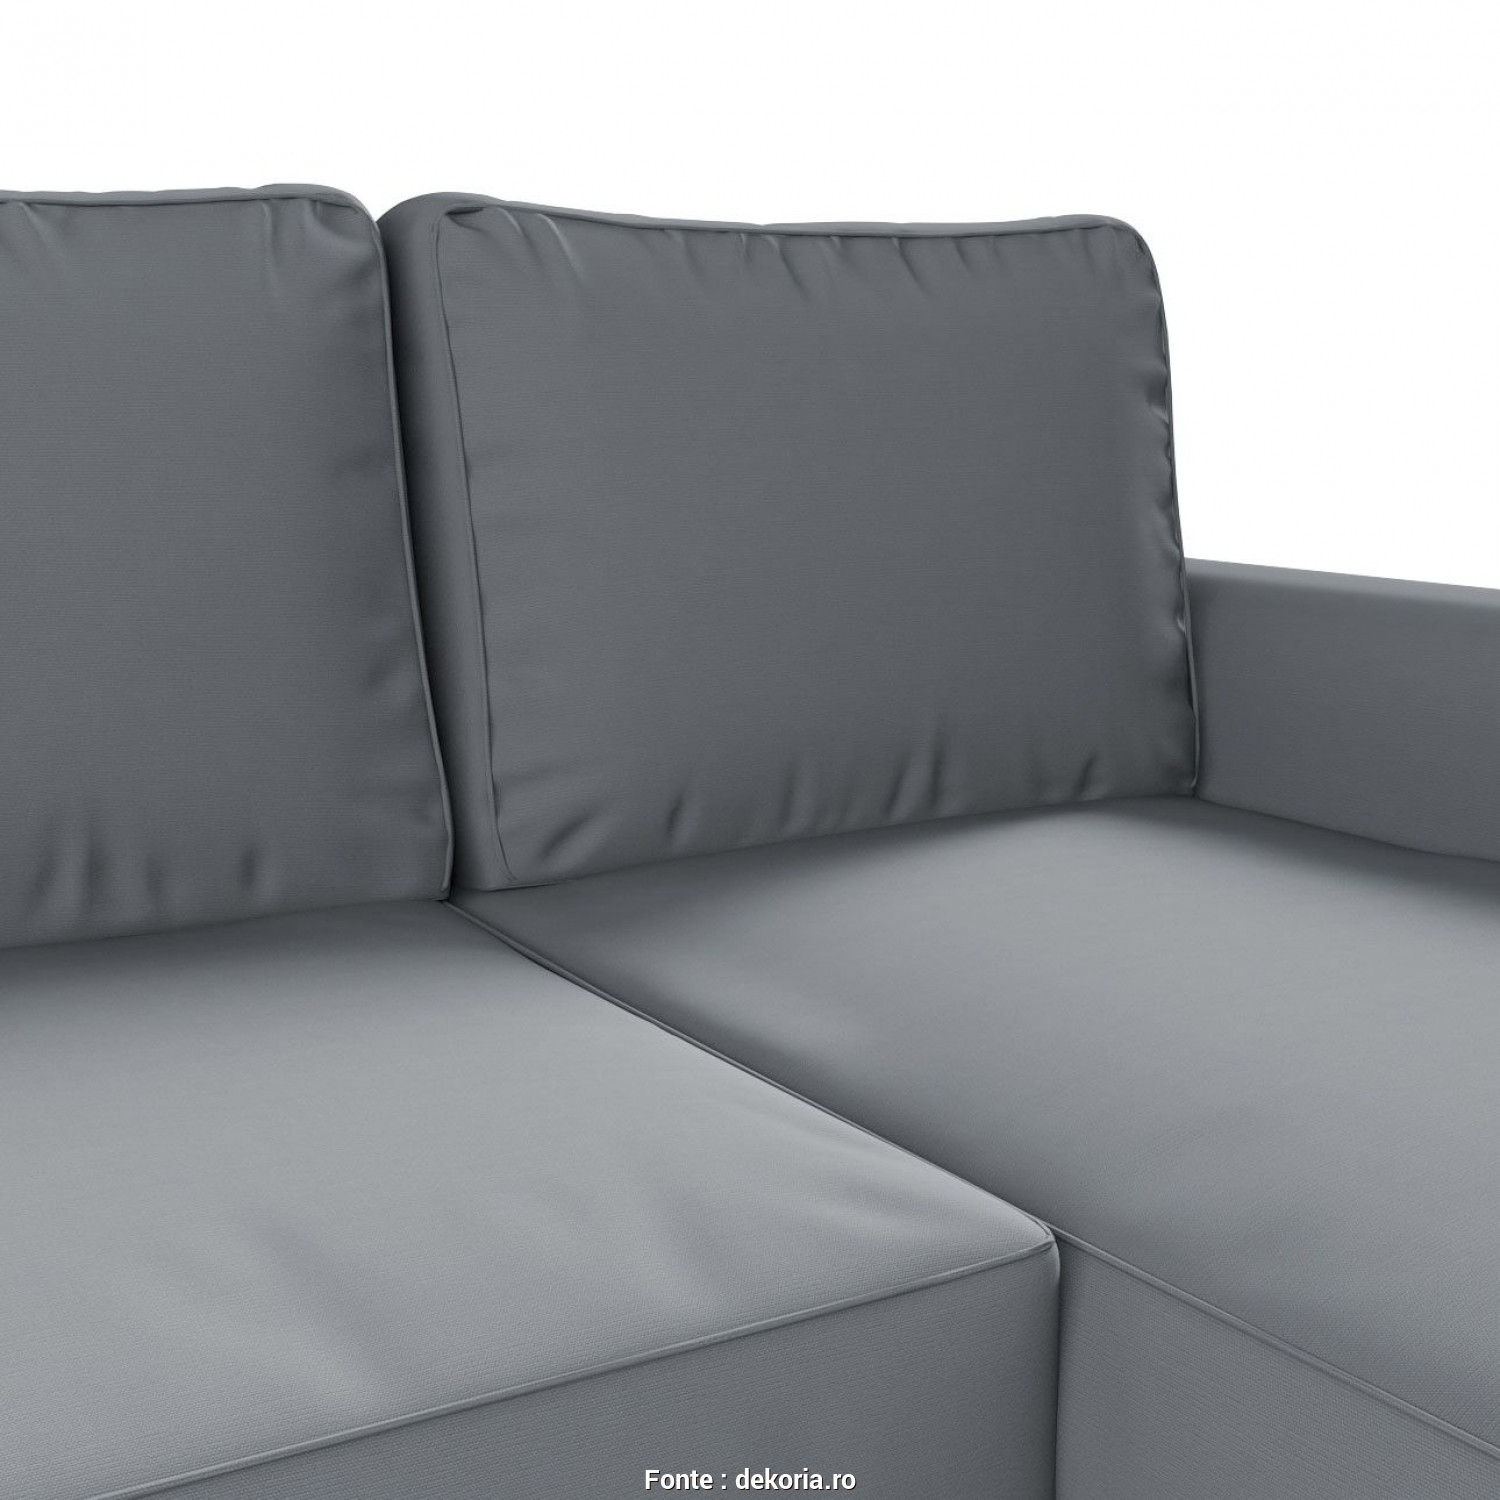 Backabro Ikea Cover, Esotico Backabro Sofa, With Chaise Longue Cover In Collection Panama Cotton, Fabric: 702